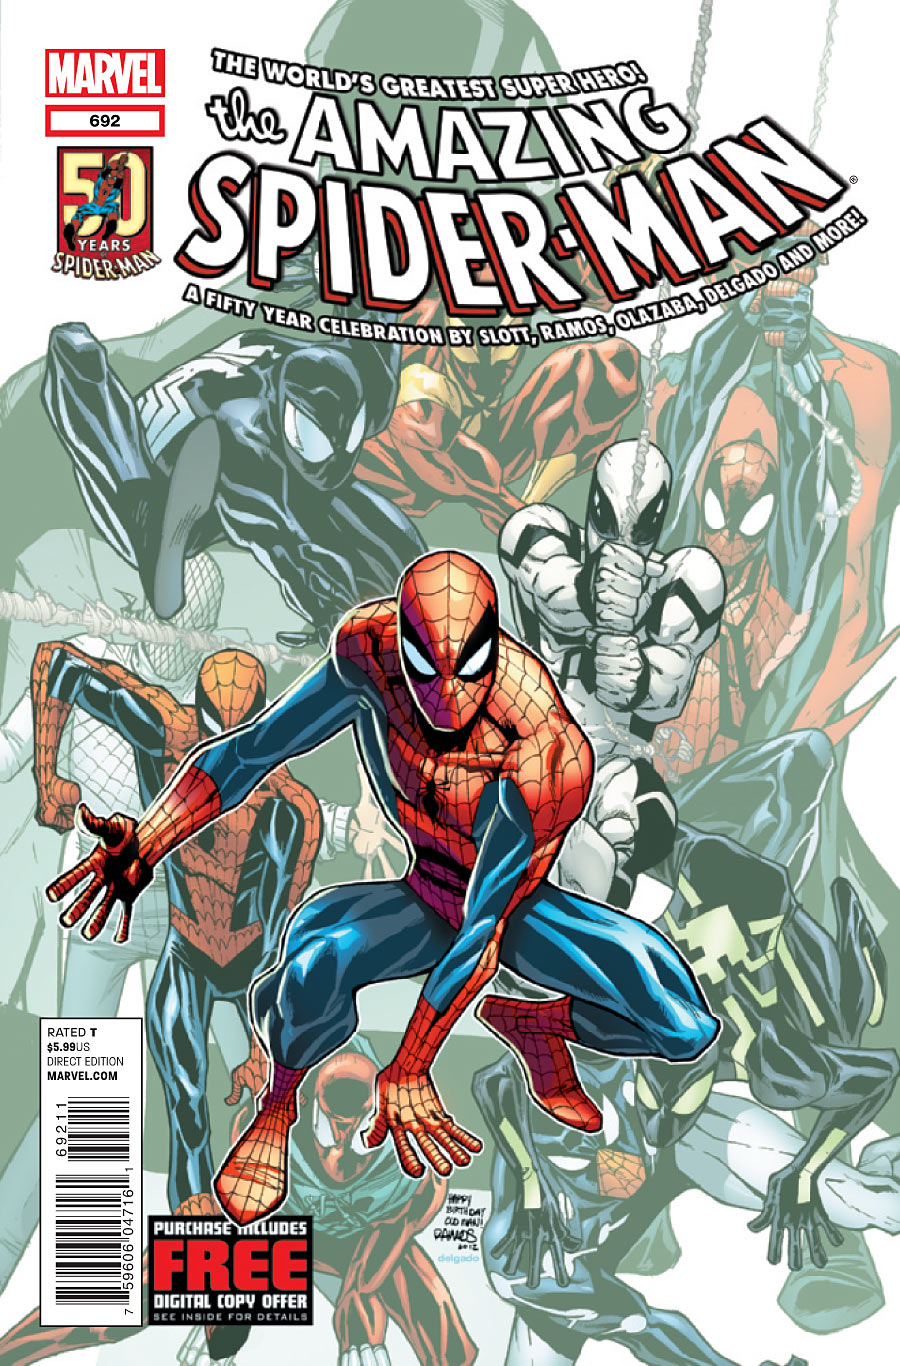 50th anniversary cover of Amazing Spider-Man issue 692